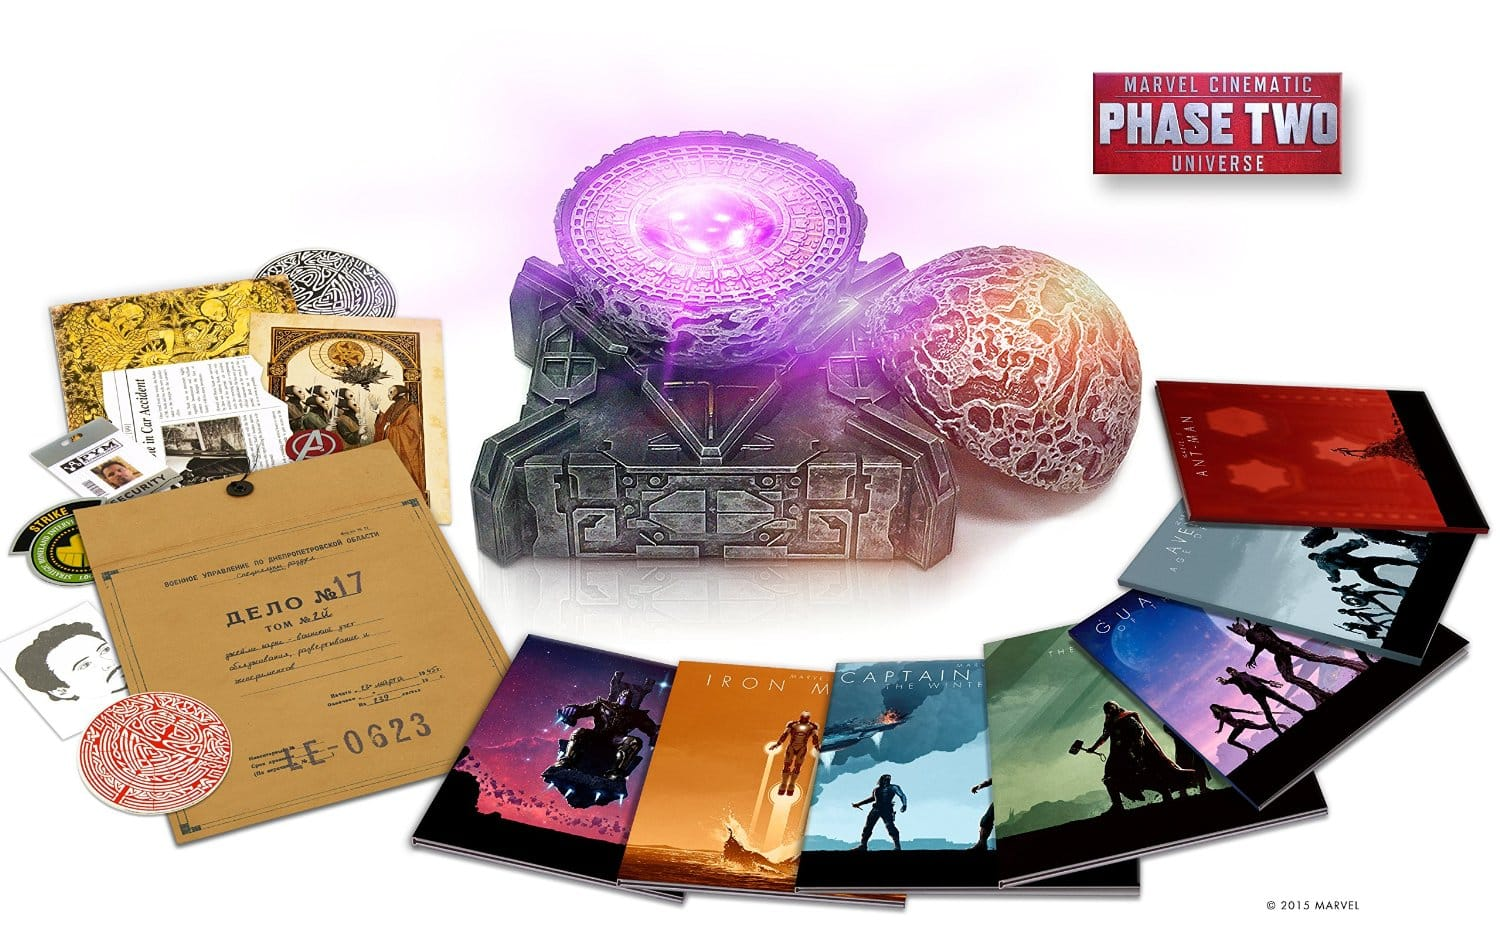 Marvel Cinematic Universe: Phase Two Collector's Set, Amazon Lightning Deal $111.29